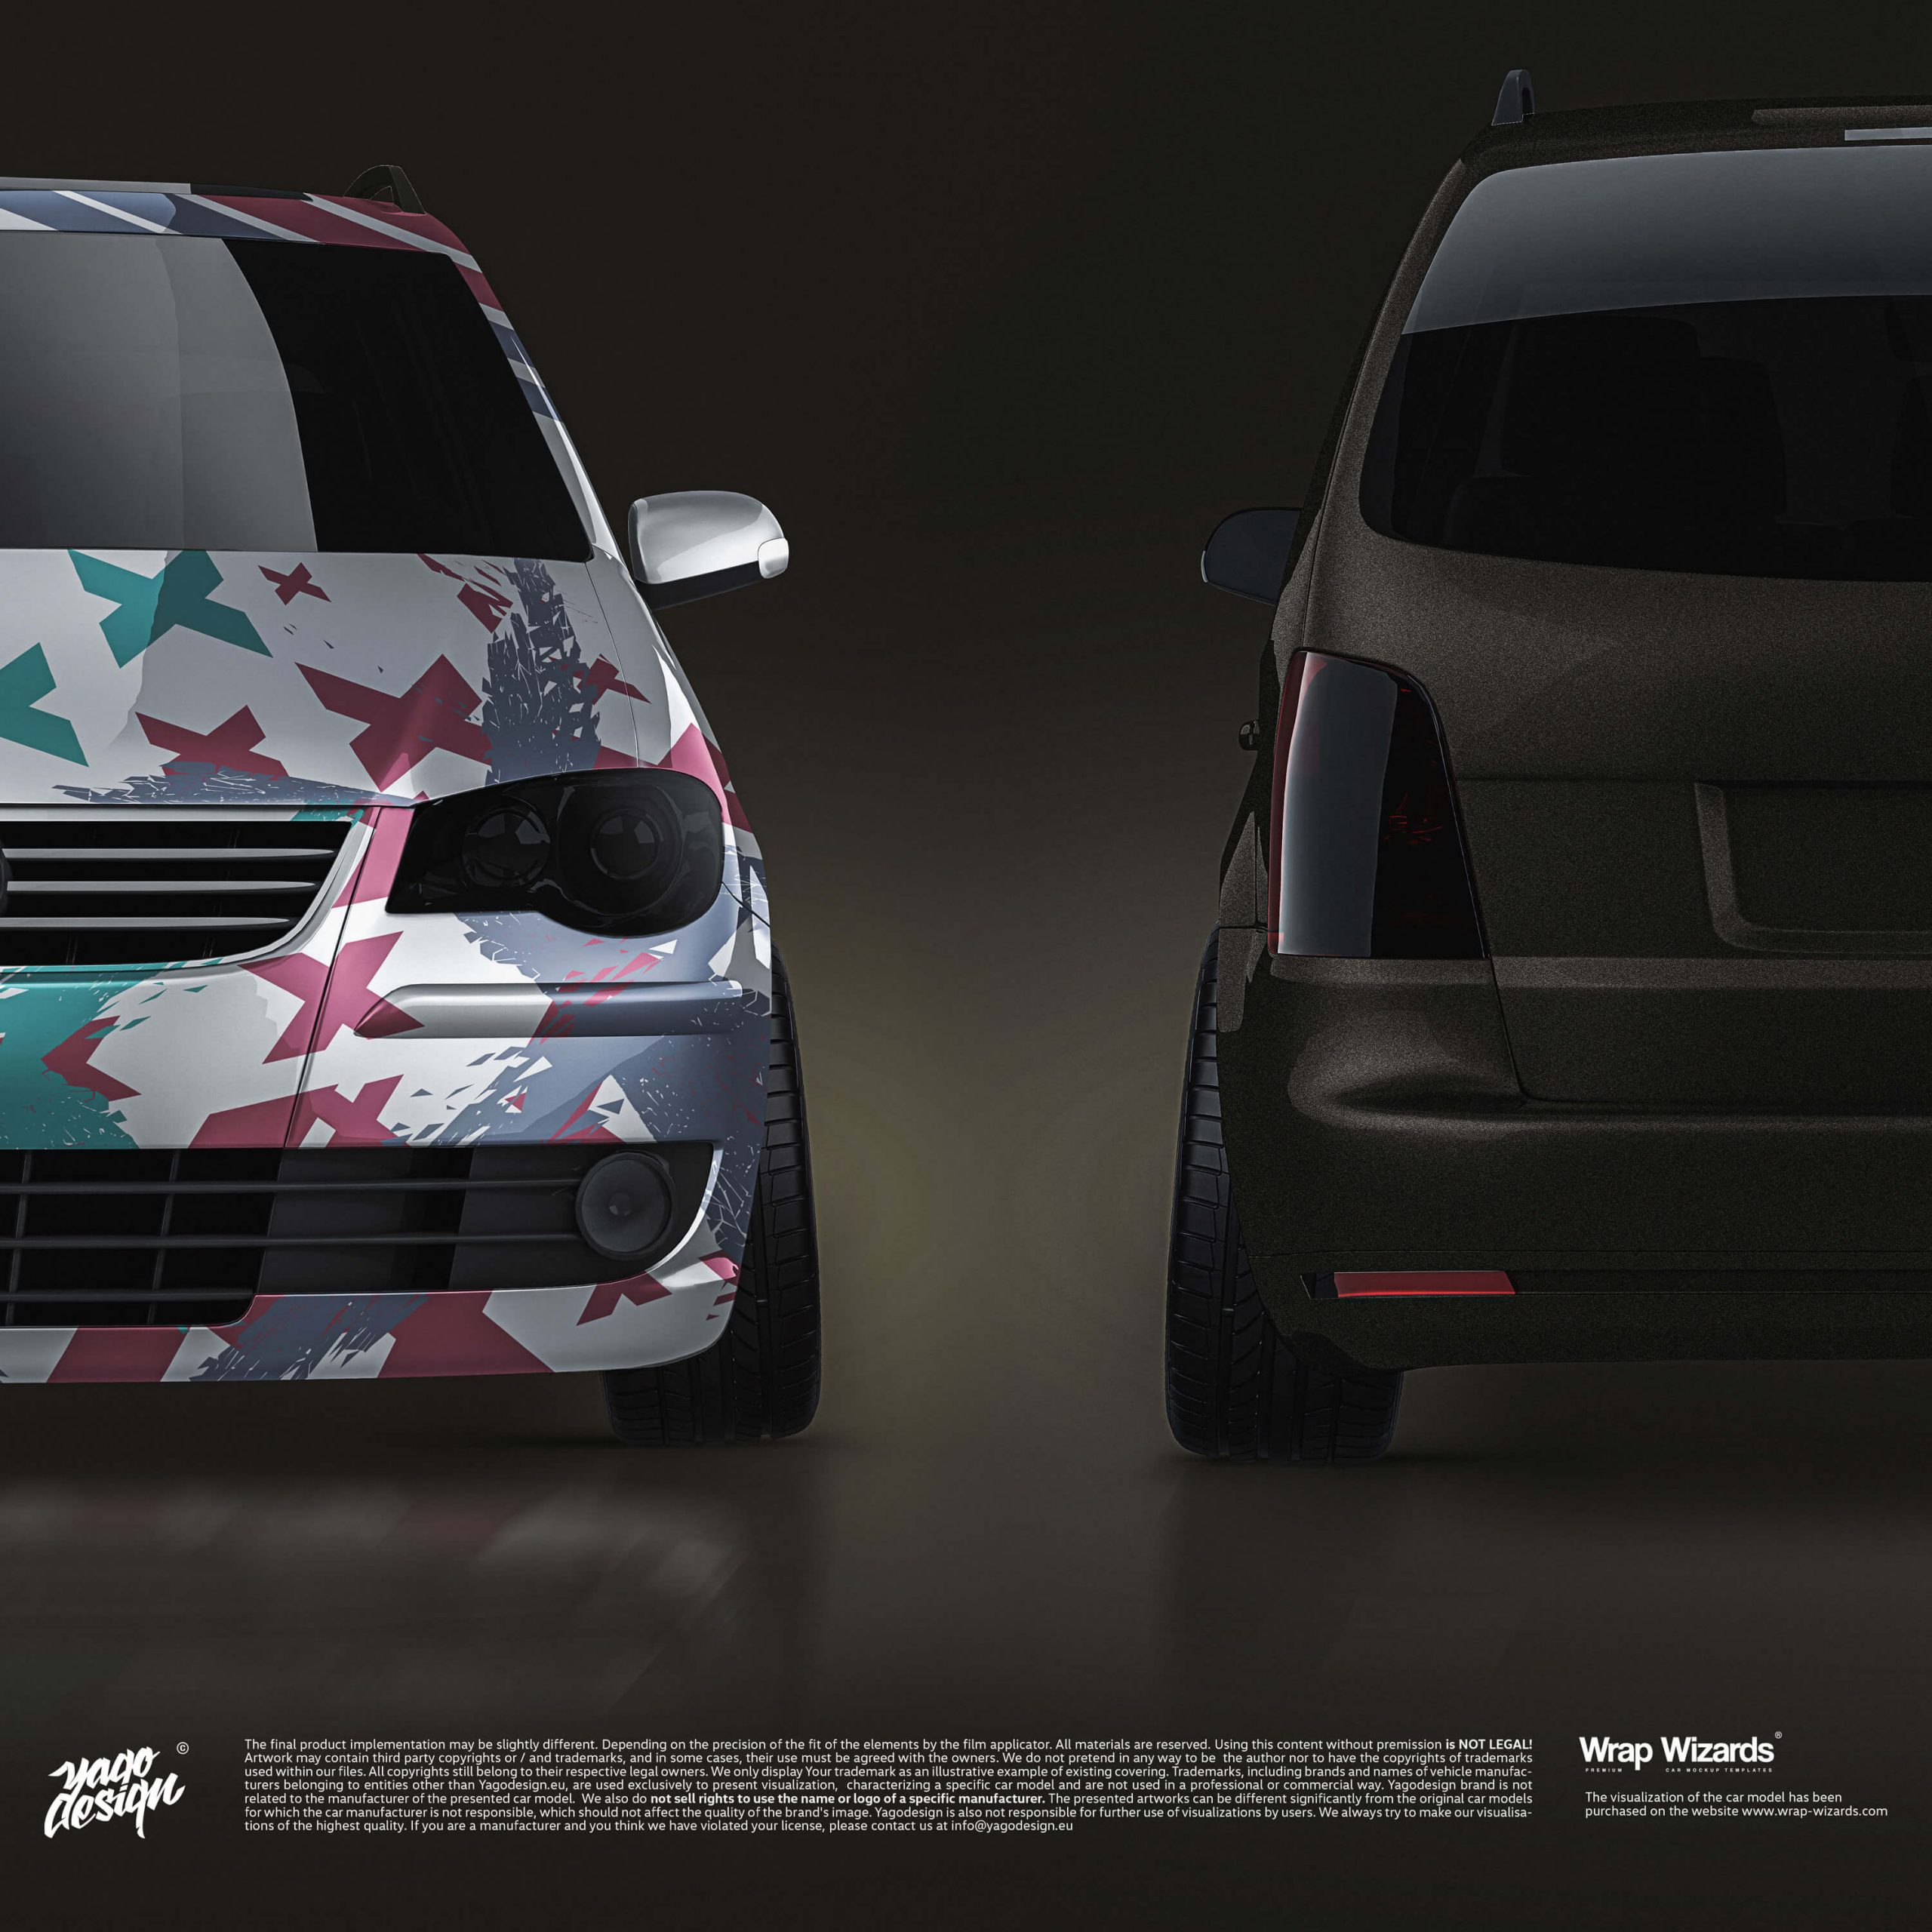 VW-Touran-2007-by-Yagodesign-2020-Car-Wrapping-6